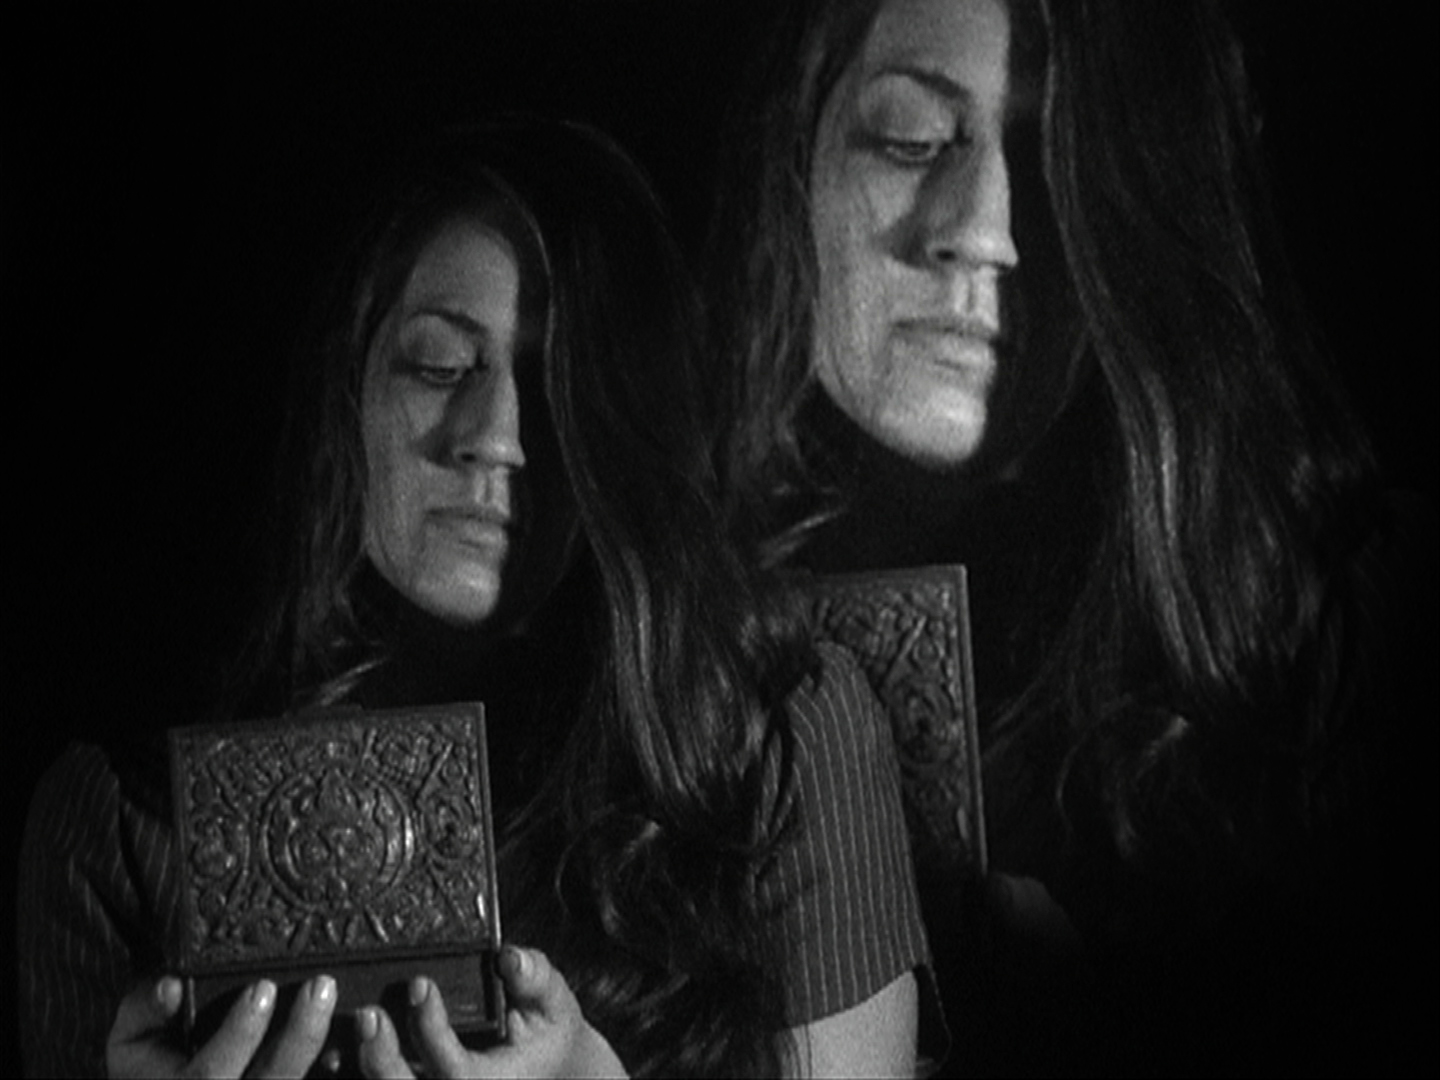 Synopsis - A girl is trapped in a box - or, is she? This 16mm/HD, surrealist short follows Luna as she listlessly travels through different environments, trying to find a way out of